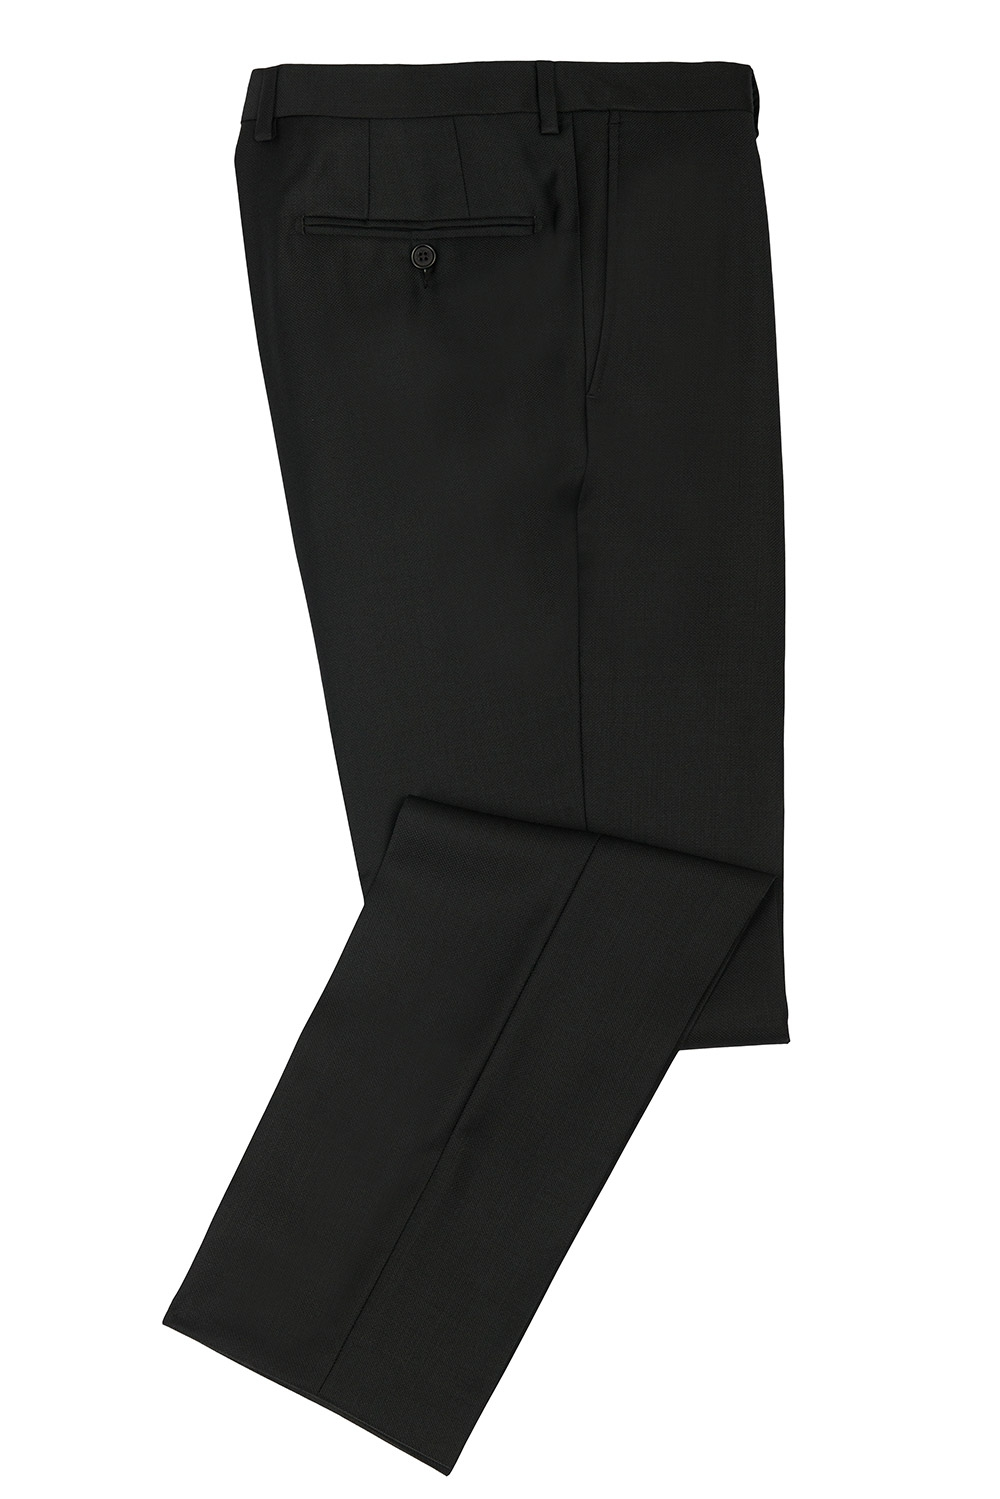 Superslim Black Plain Trouser 0